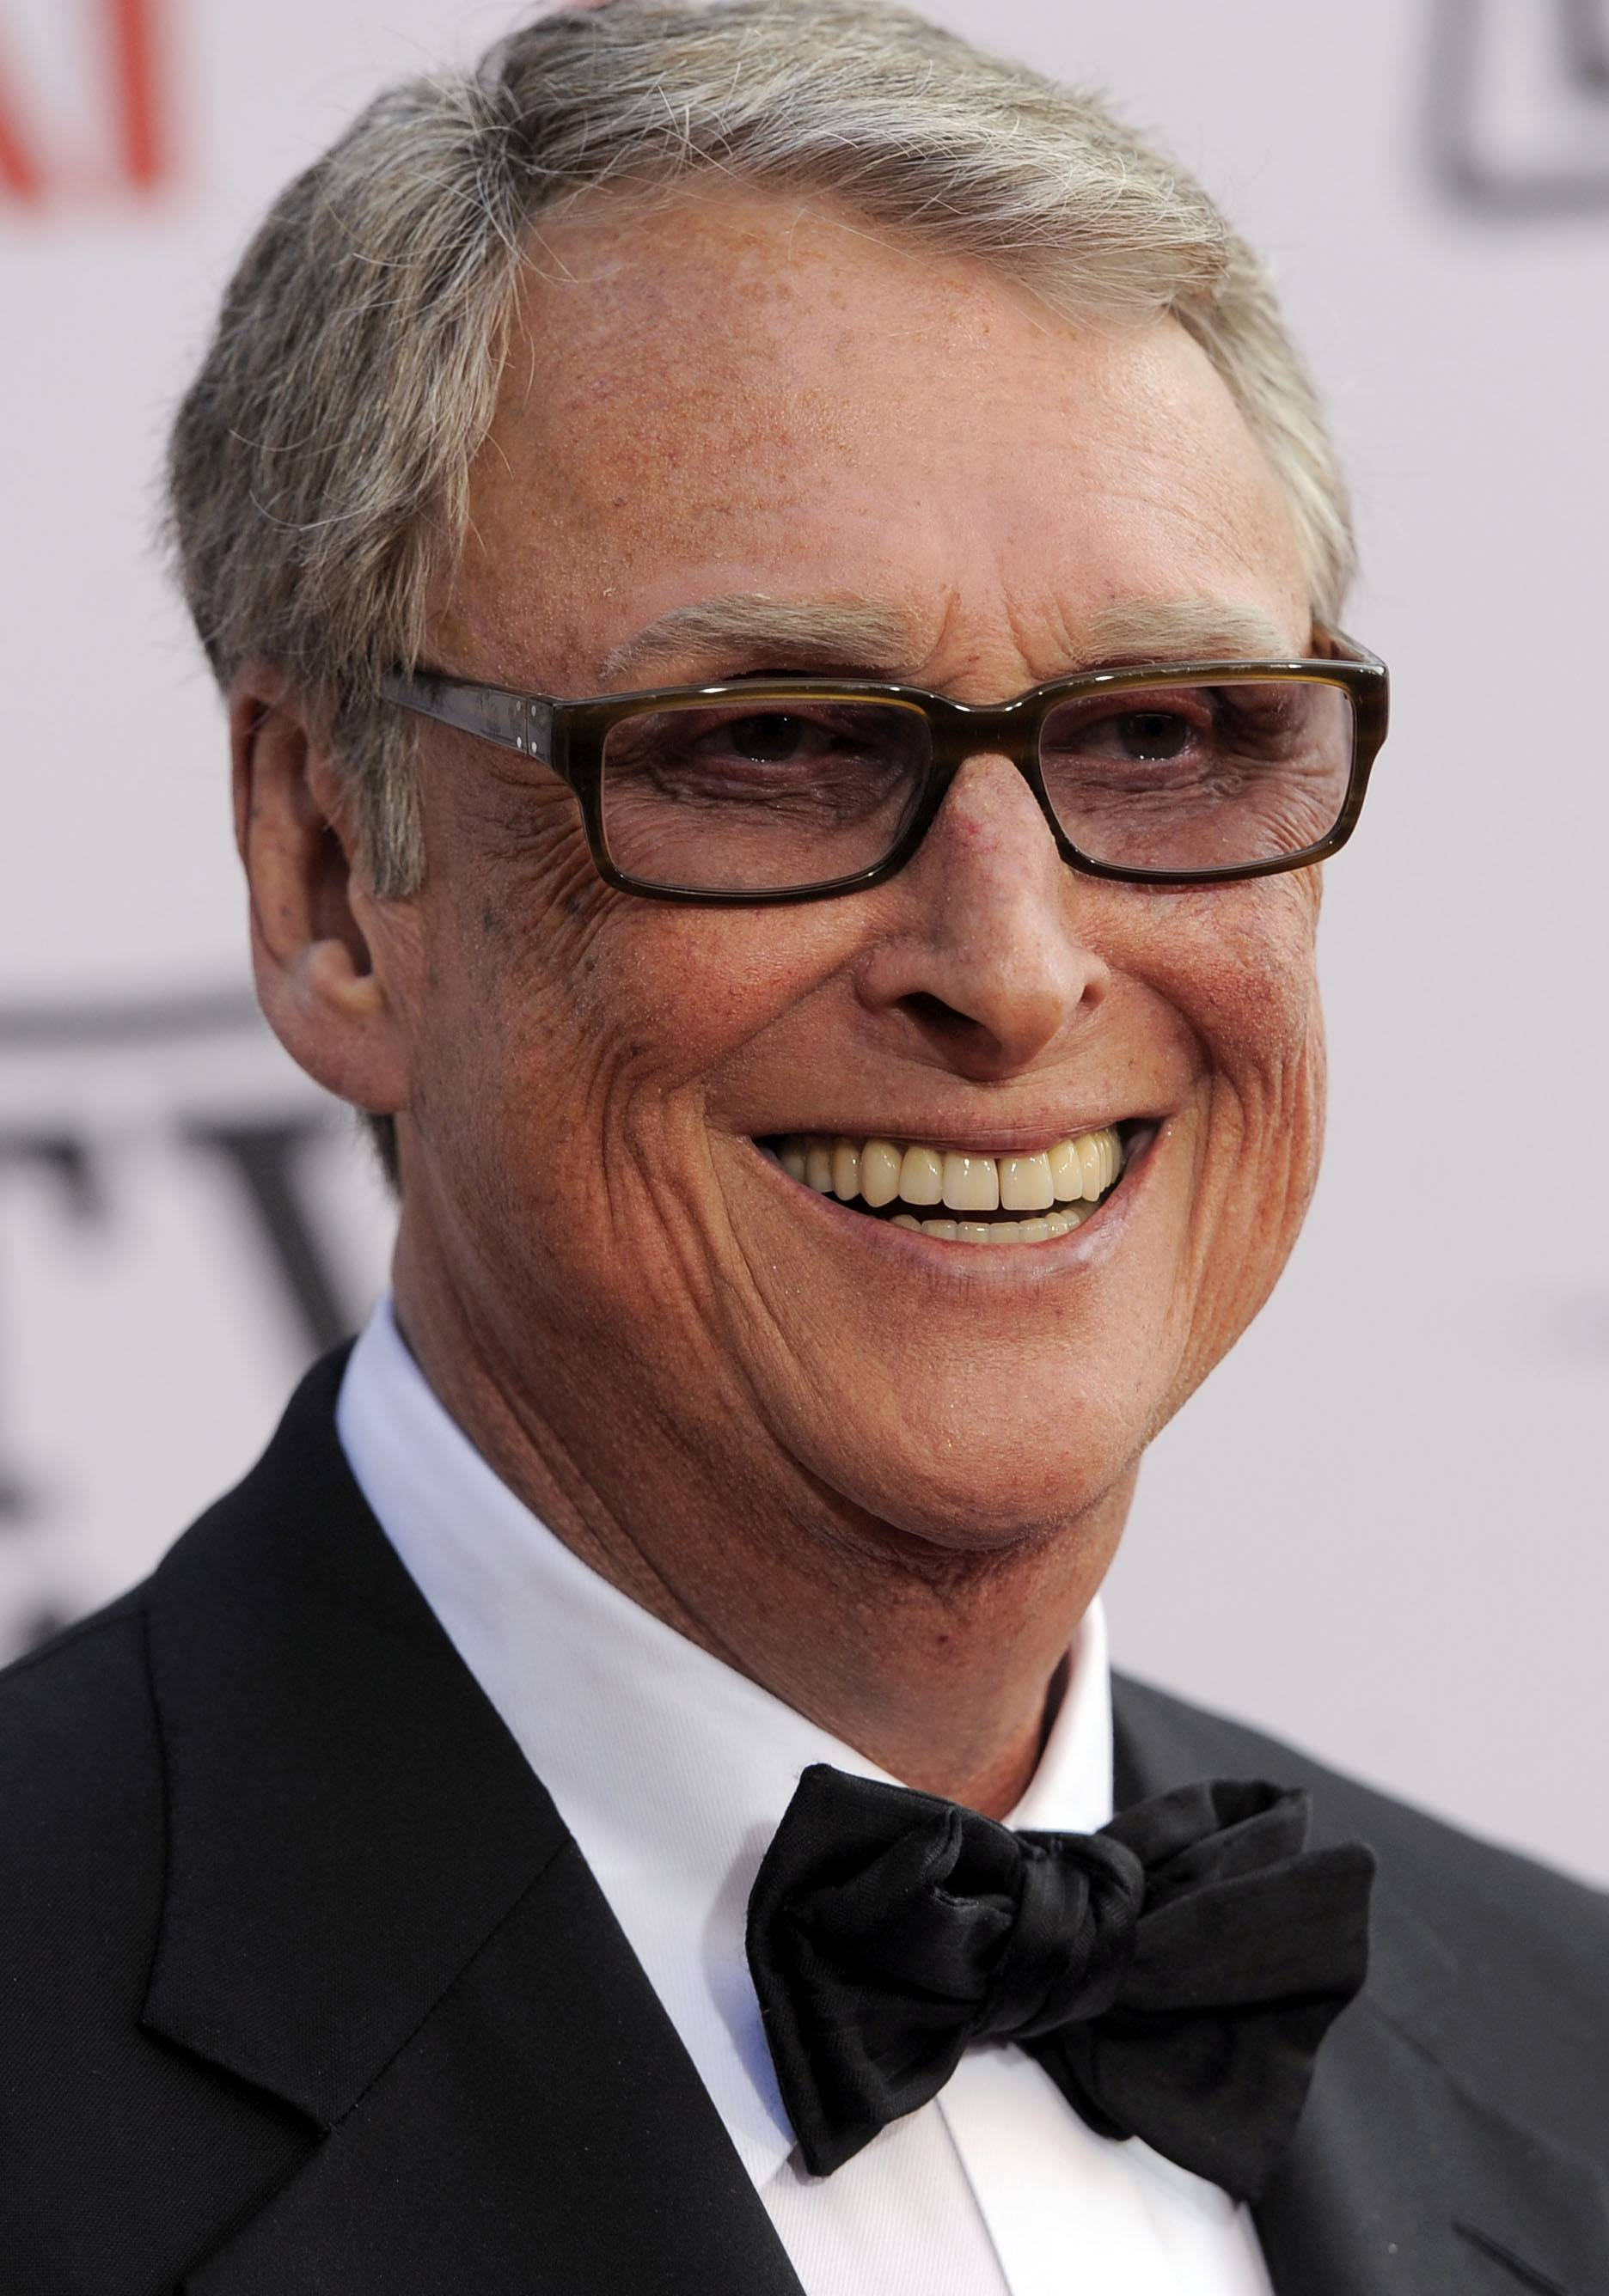 Director Mike Nichols and husband of Diane Sawyer died Wednesday evening. He was 83.